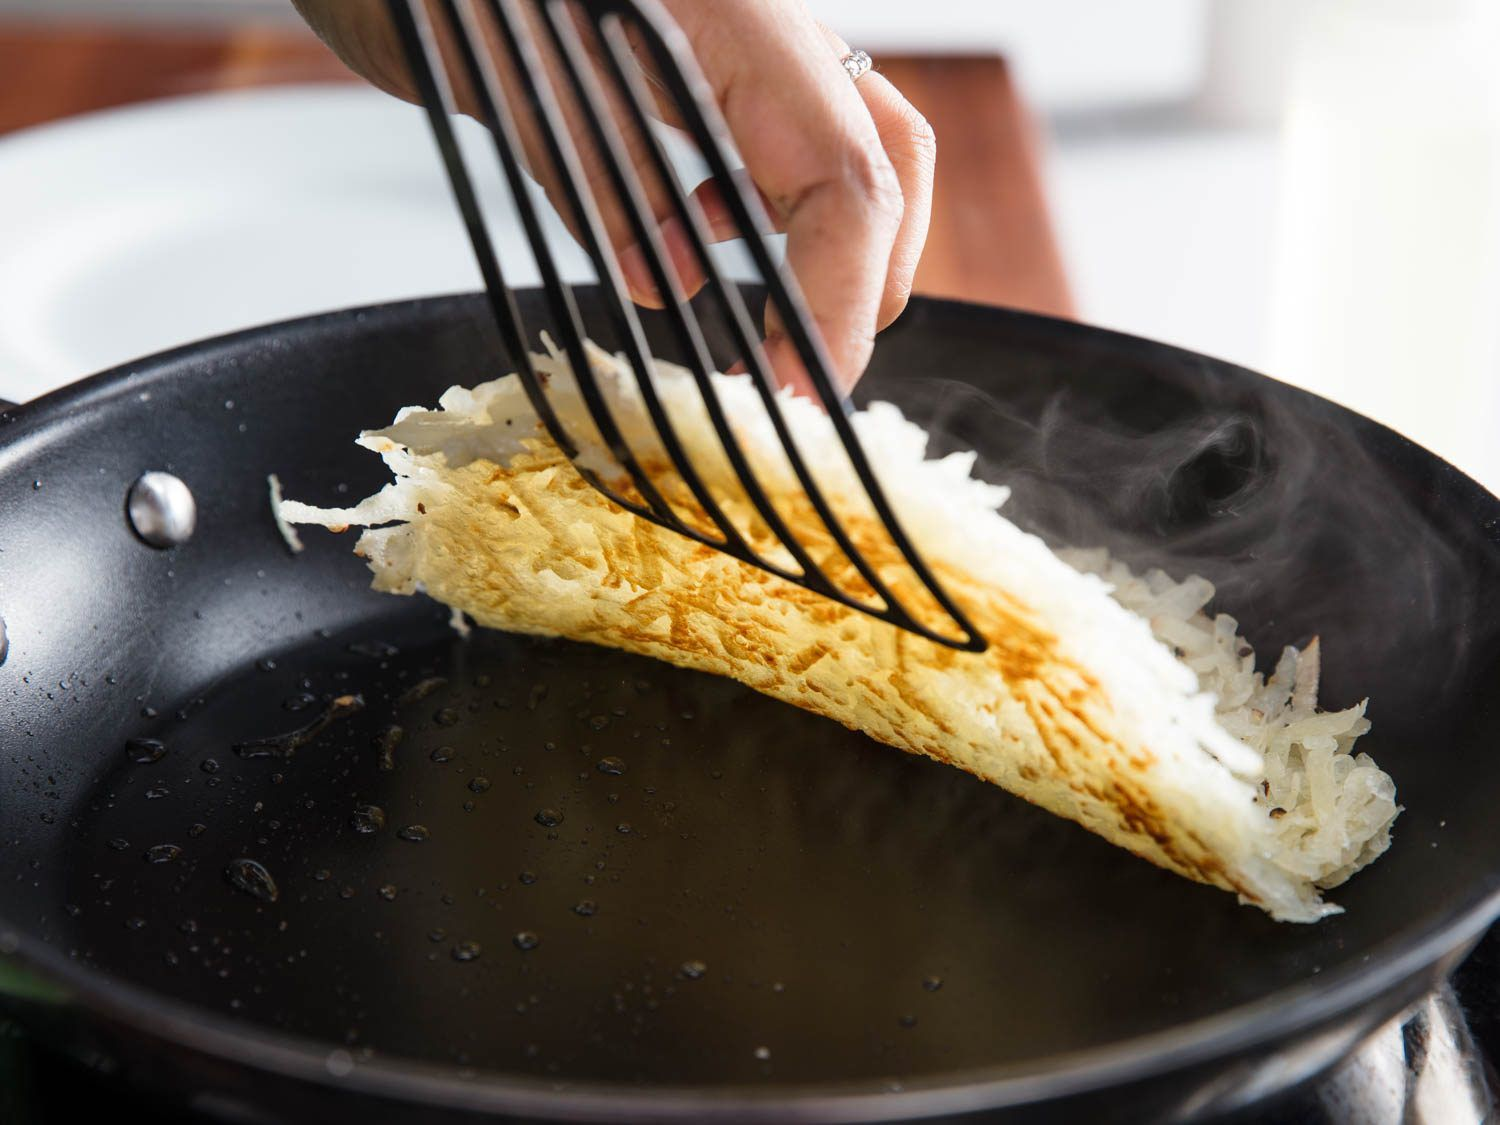 A thin metal fish spatula flipping a pile of hash browns in a skillet